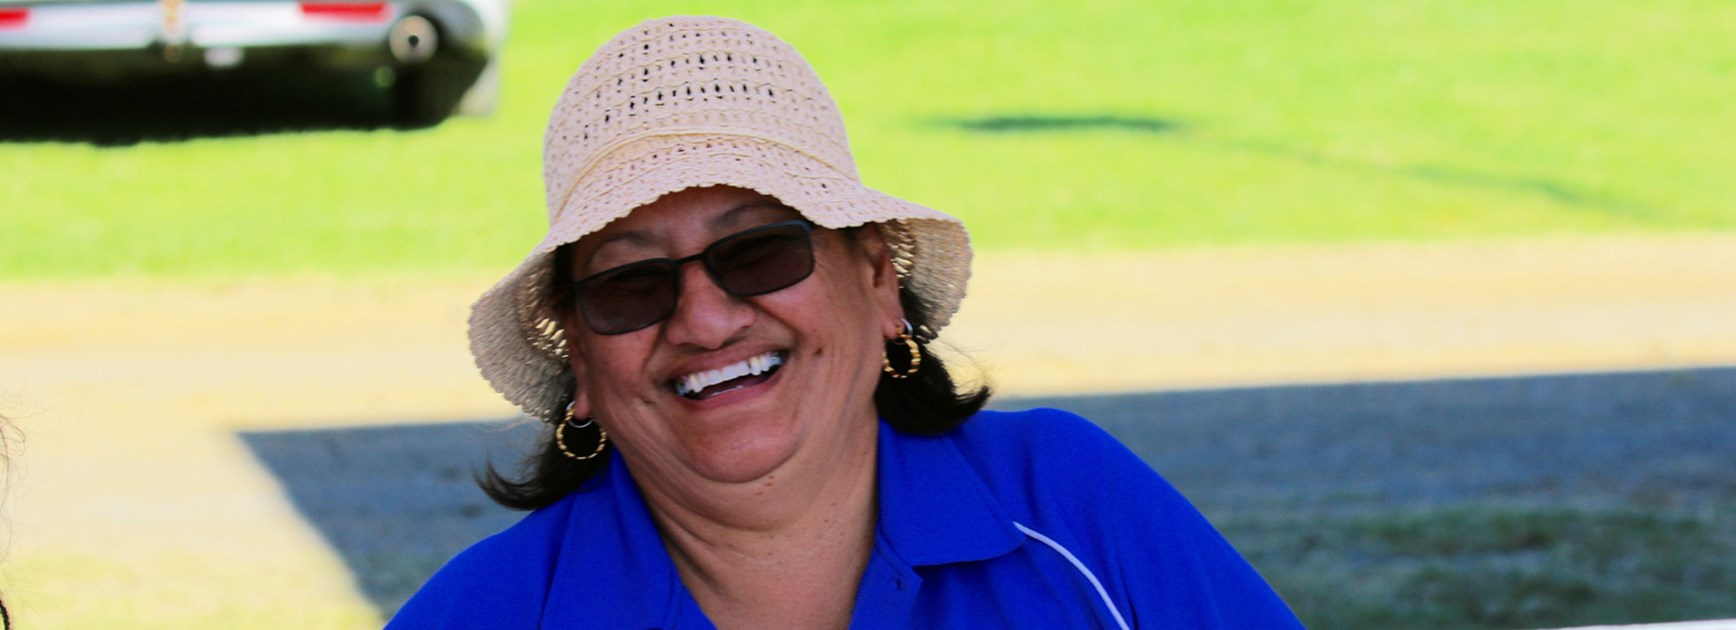 Juanita Woodhouse has been a part of Auckland rugby league for more than 20 years.